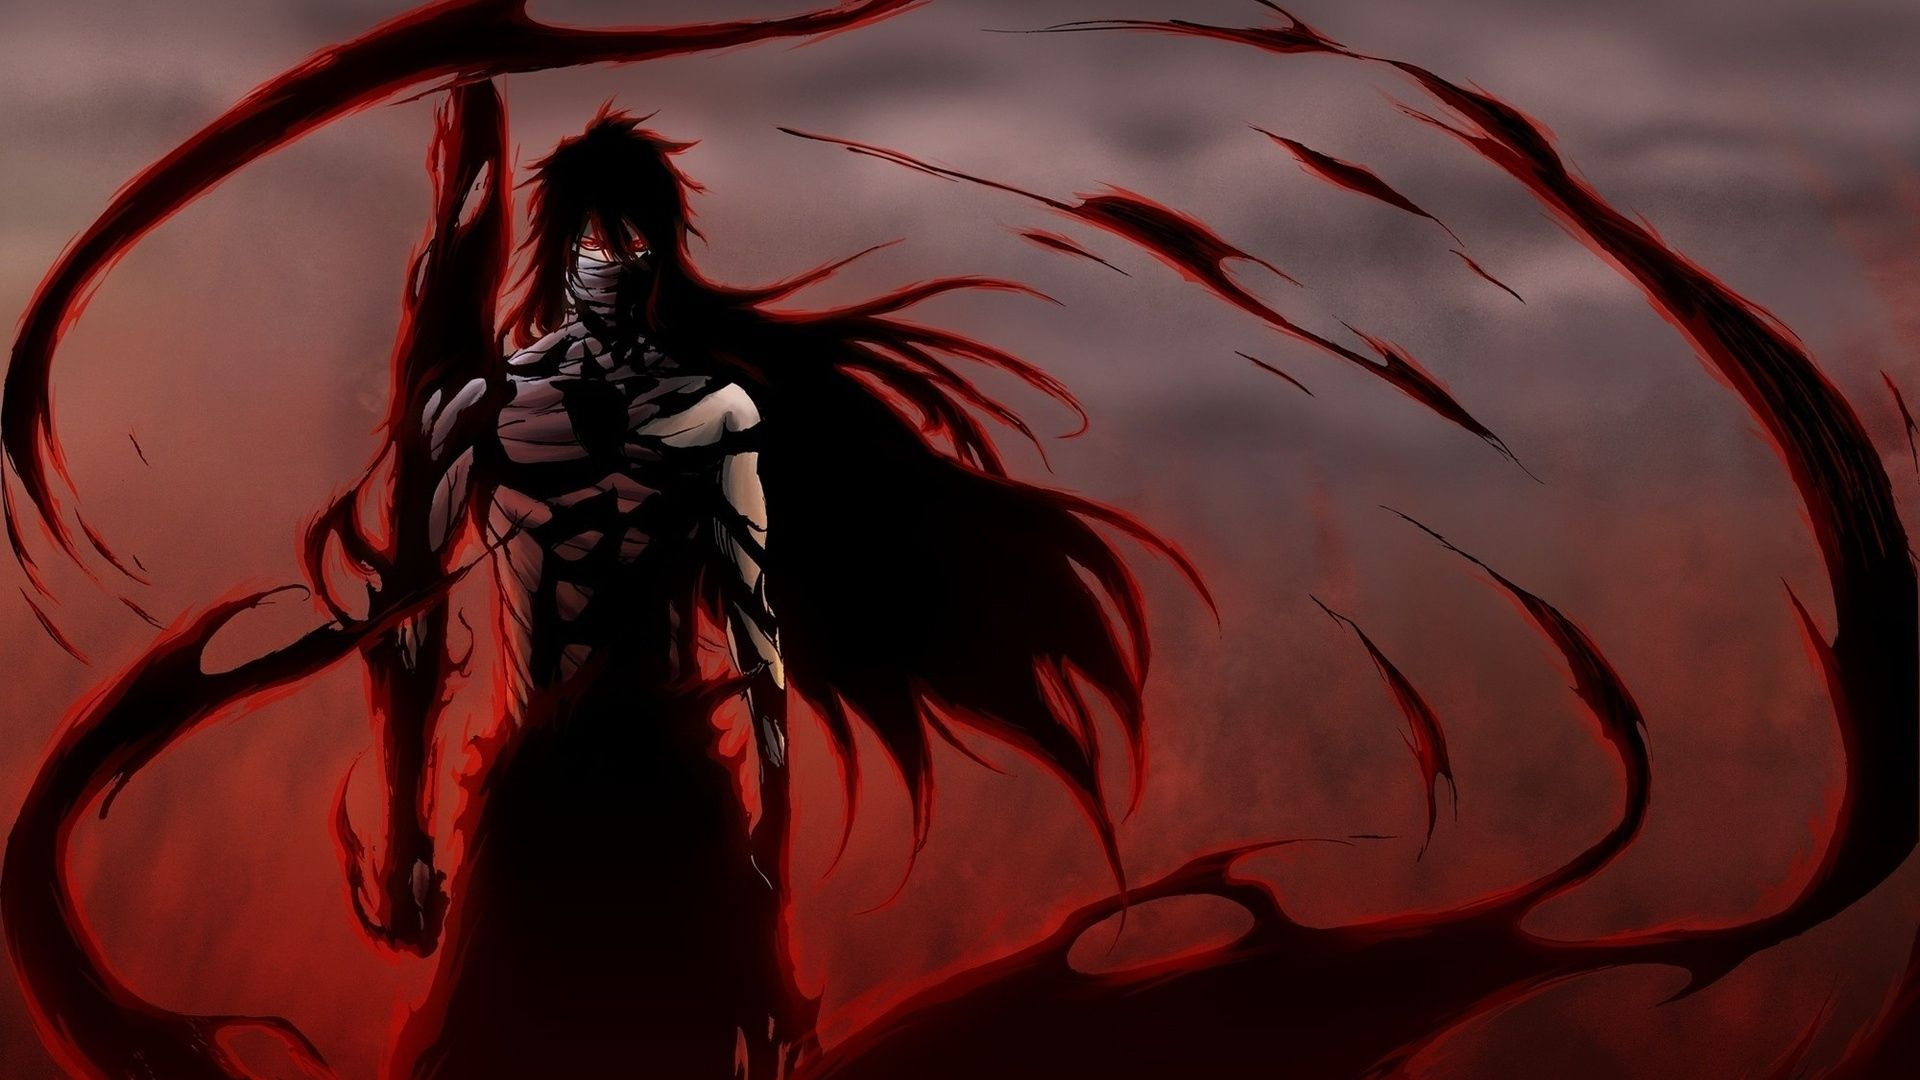 Download Wallpaper X Anime Bleach Ichego Posture Wind Background Full Hd P Hd Background